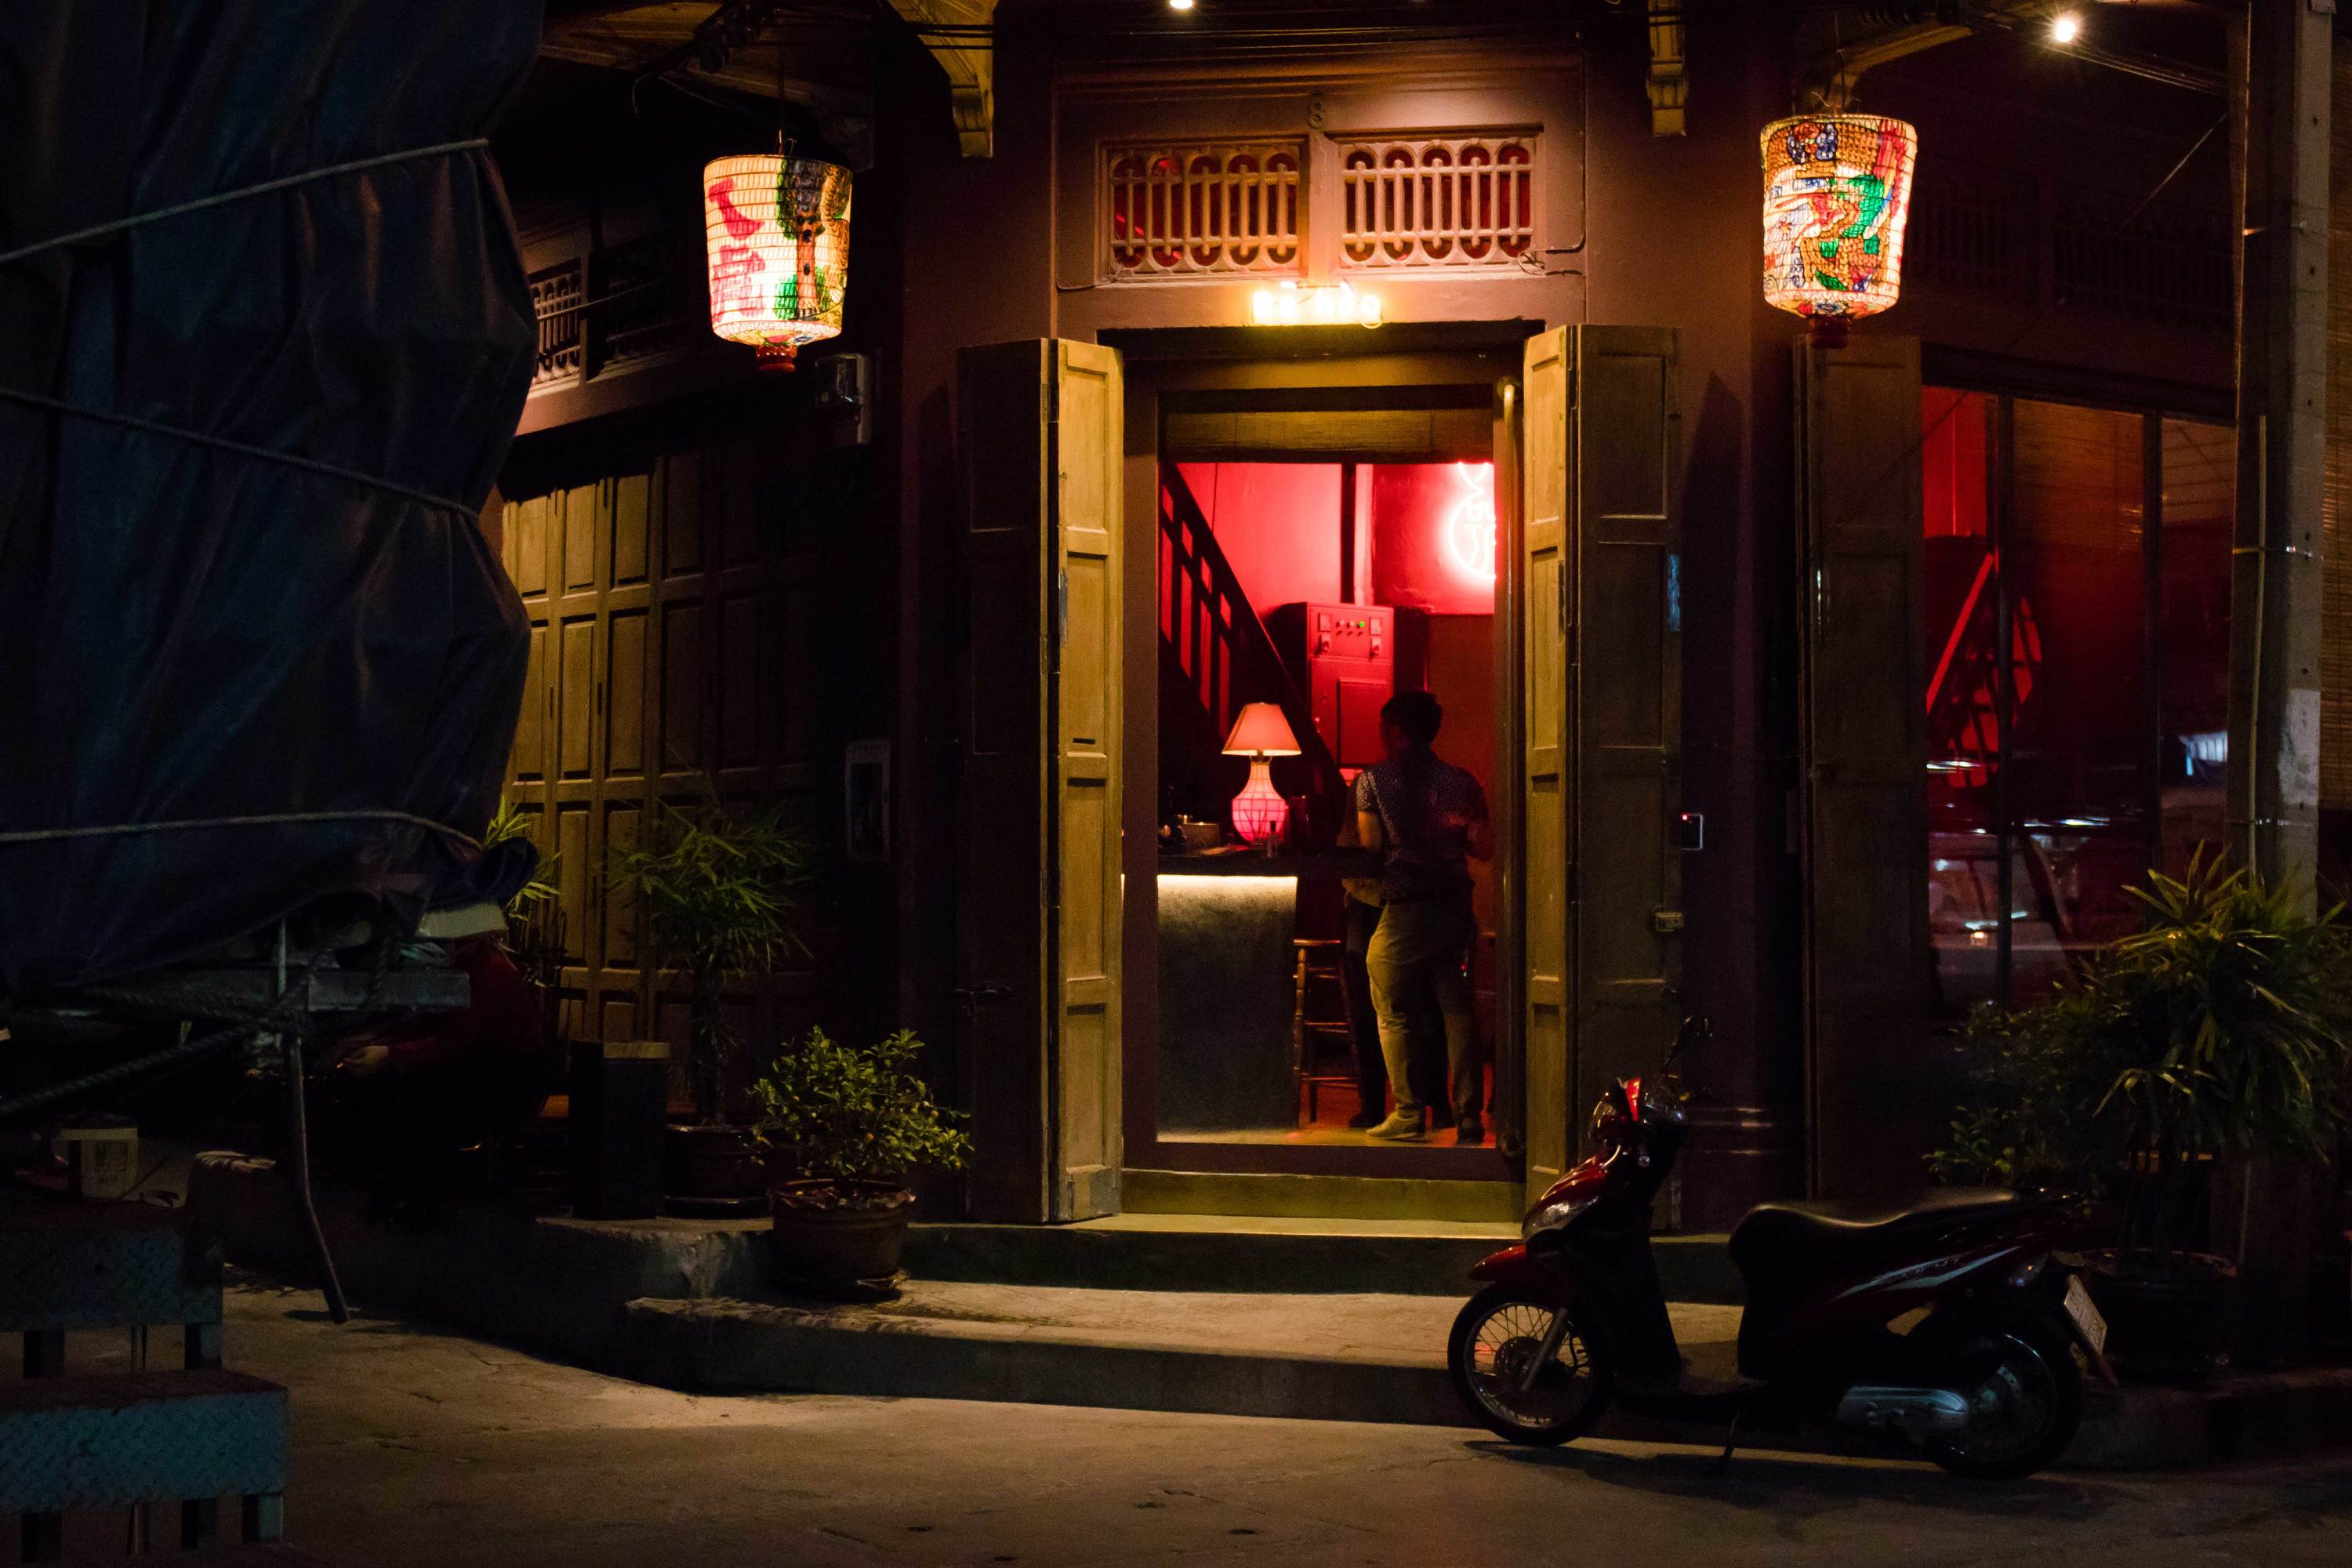 Think You've Seen Everything in Bangkok? Here's 5 Local Favorite Spots Away From the Tourist Trail